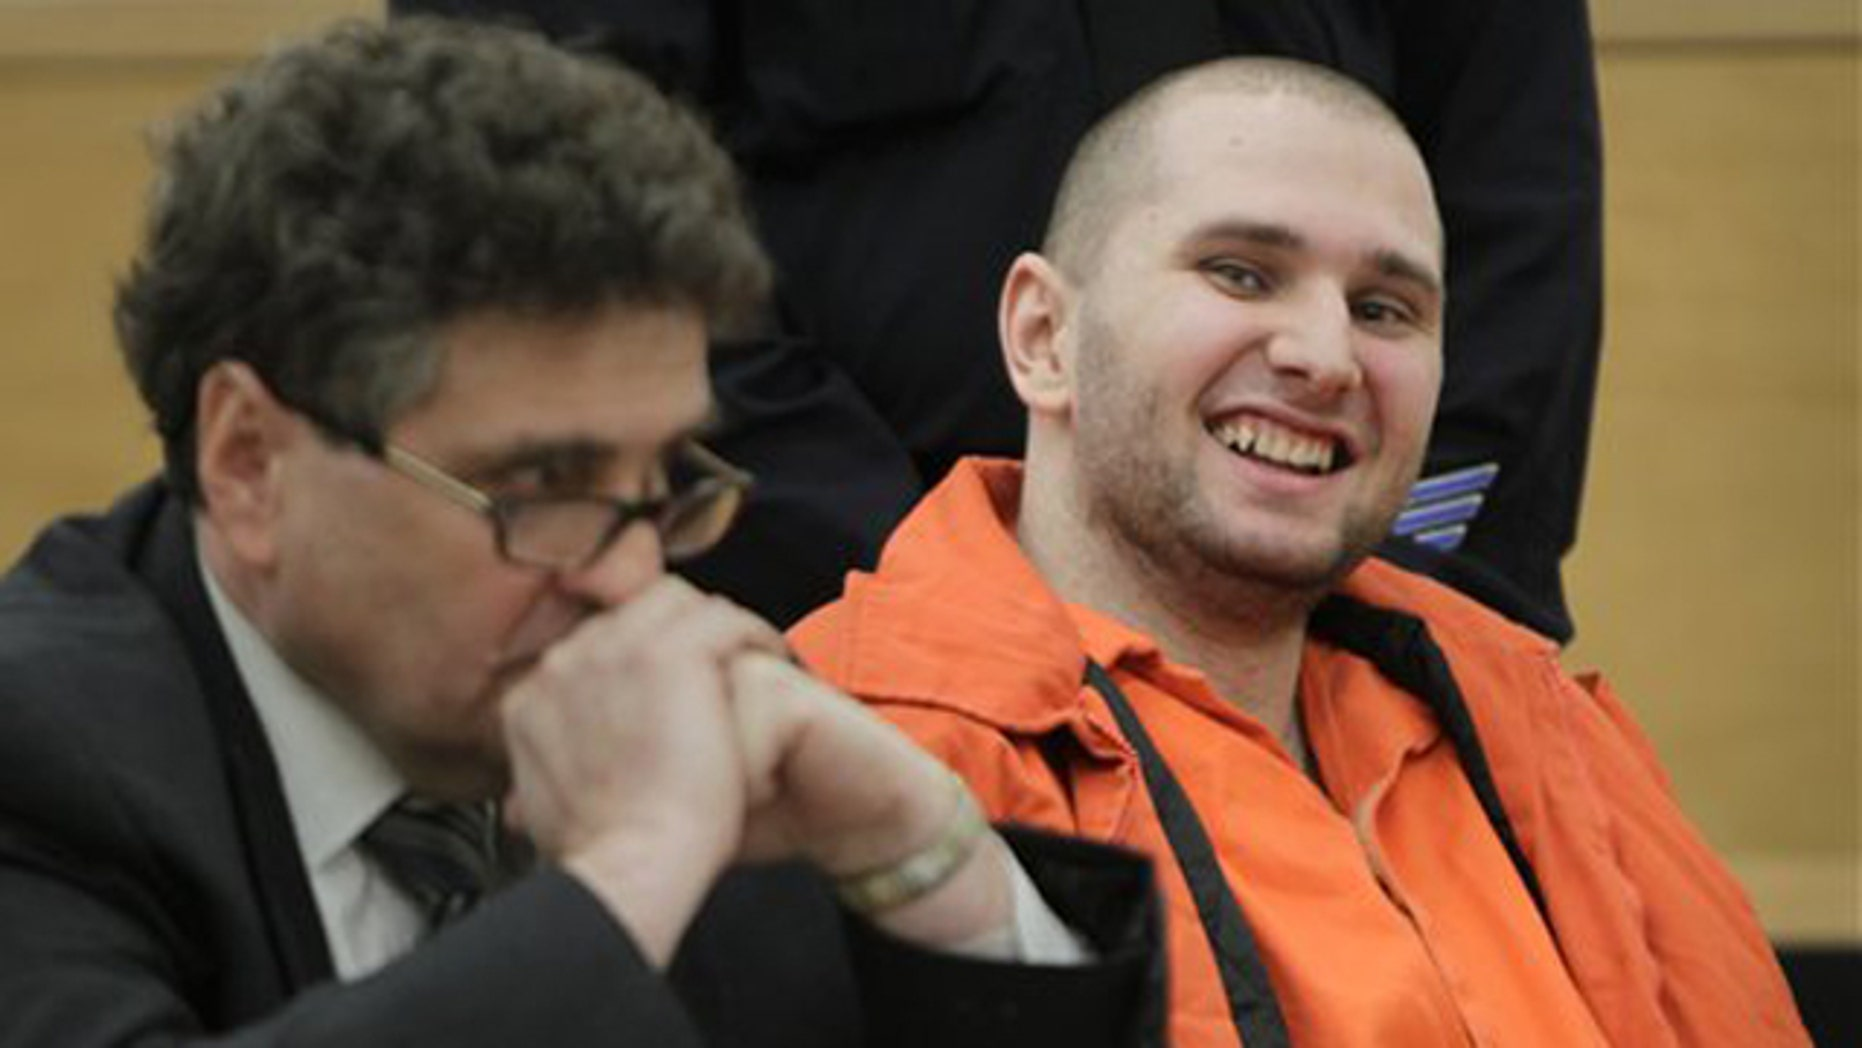 Jan. 18, 2012: Maksim Gelman, right, laughs during his sentencing at Supreme Court in New York.